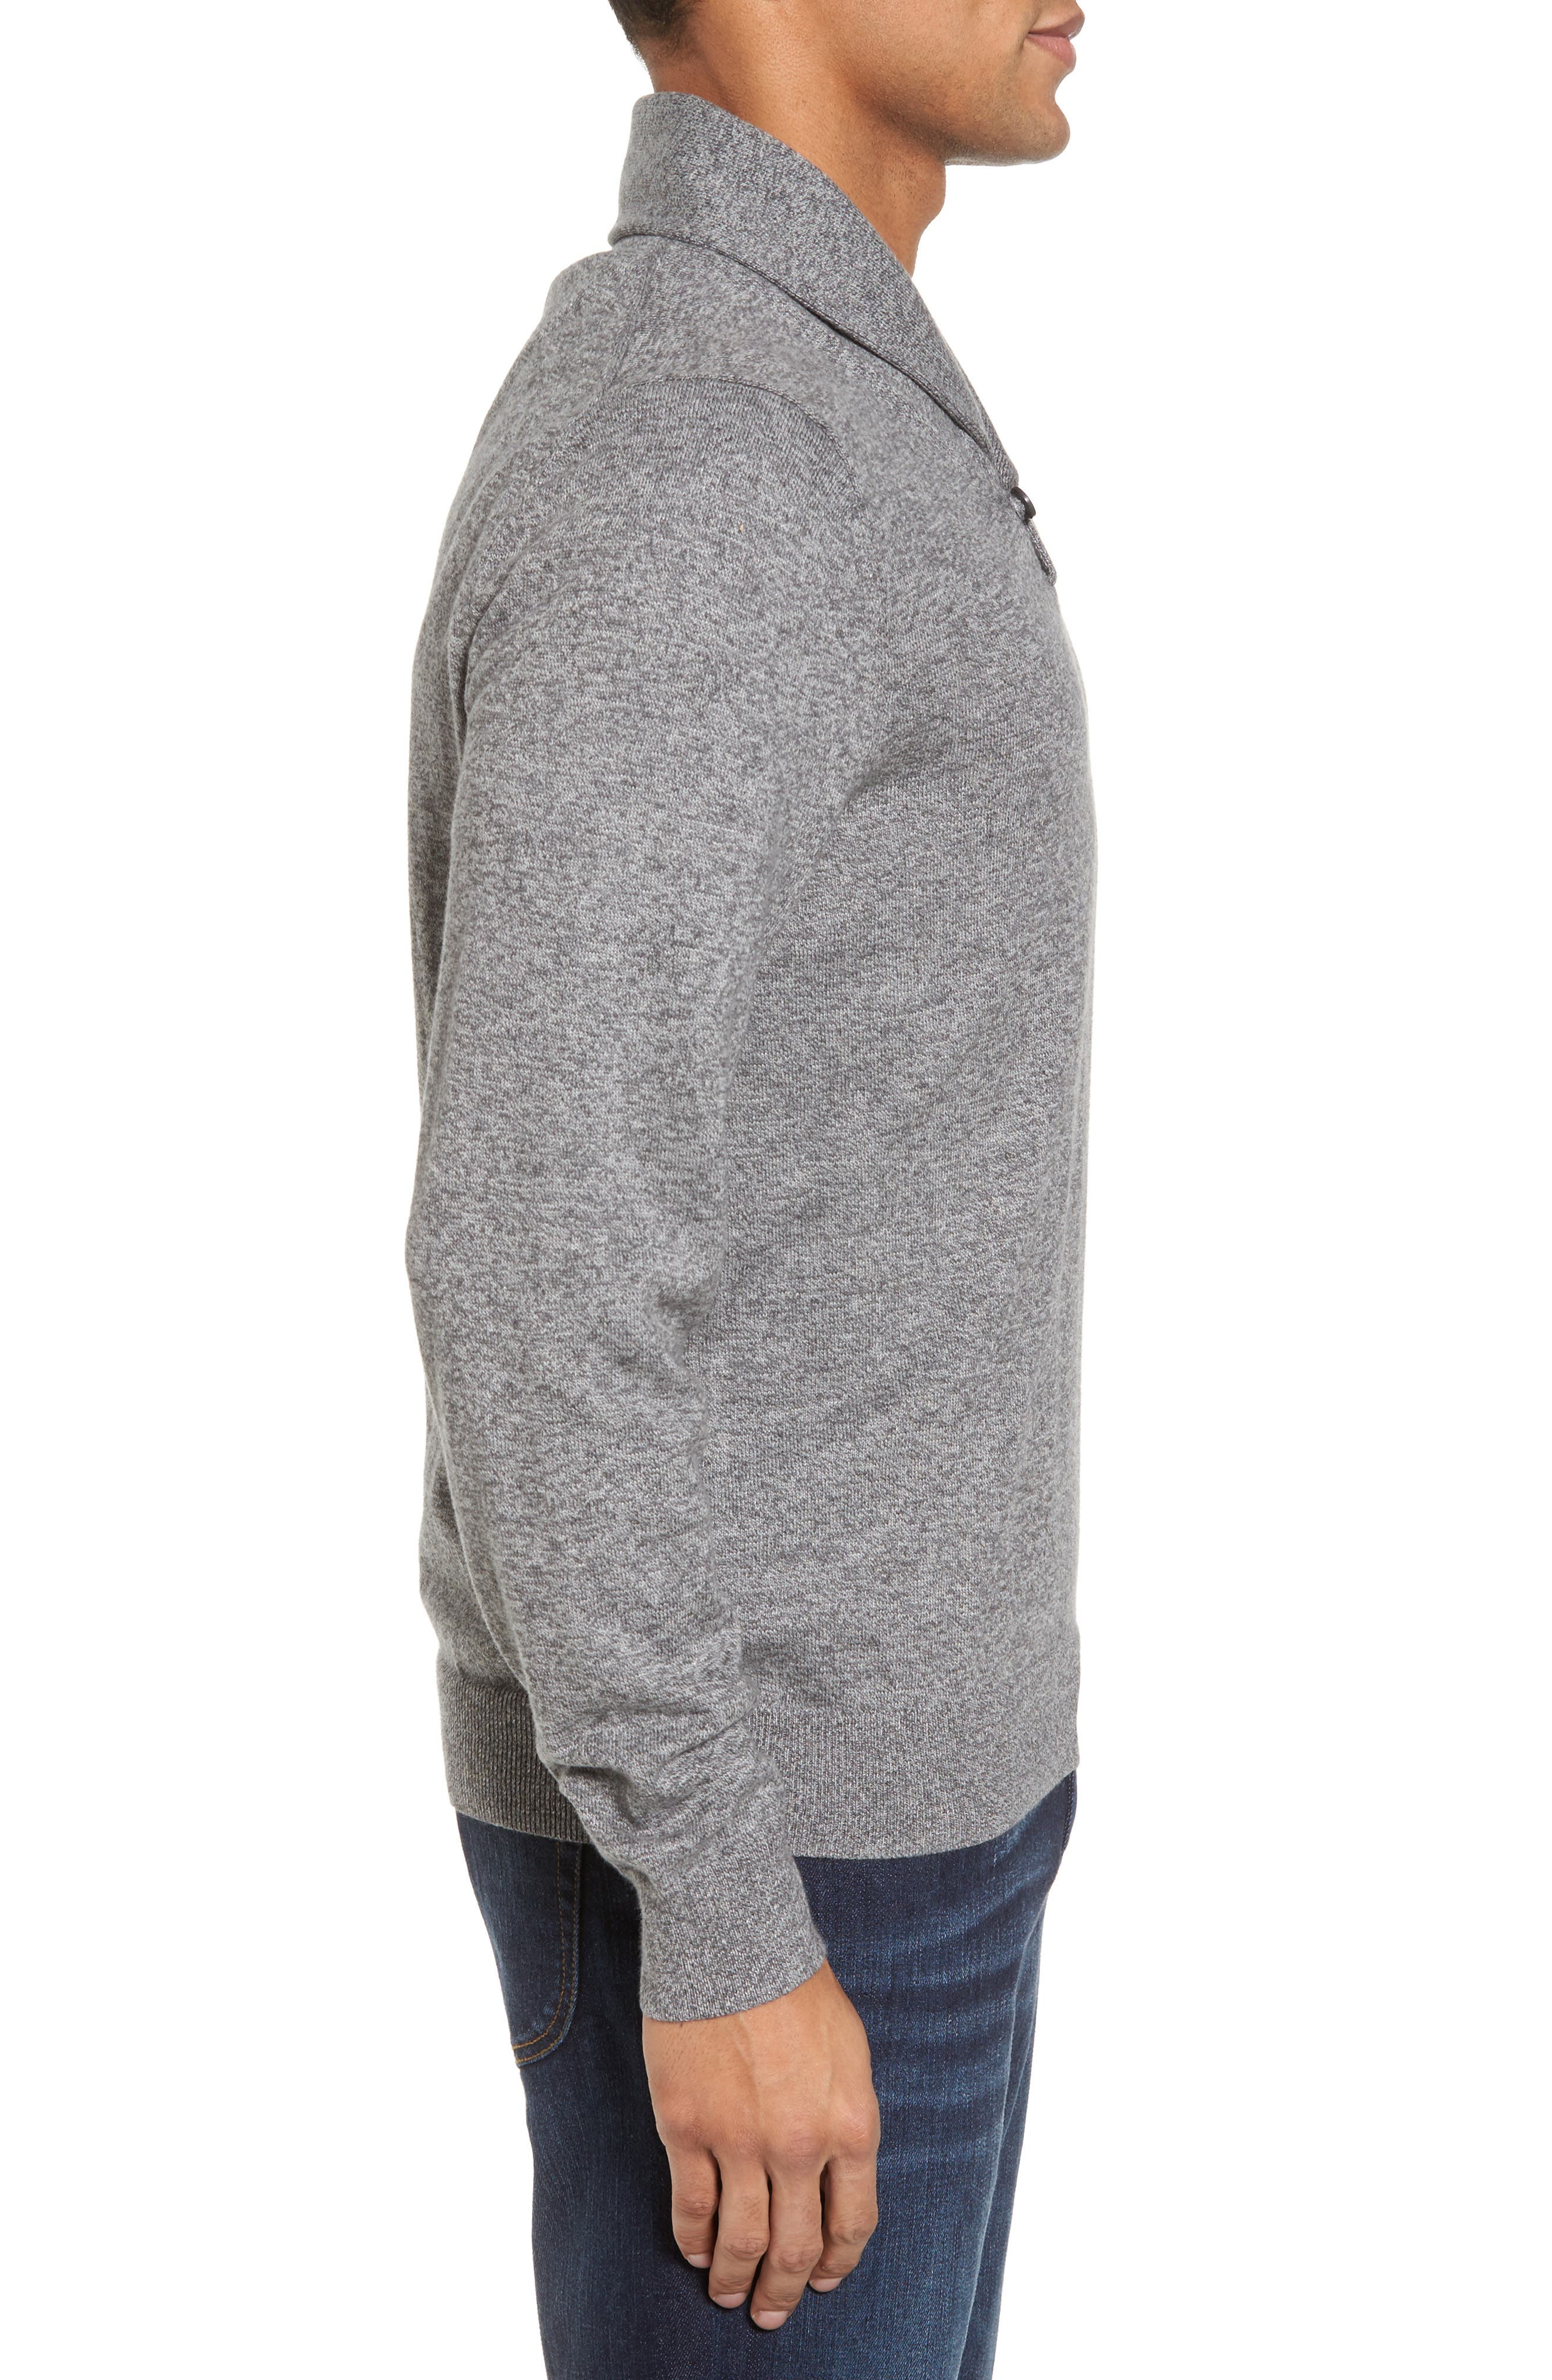 Alternate Image 3  - Nordstrom Men's Shop Cotton & Cashmere Shawl Collar Sweater (Regular & Tall)